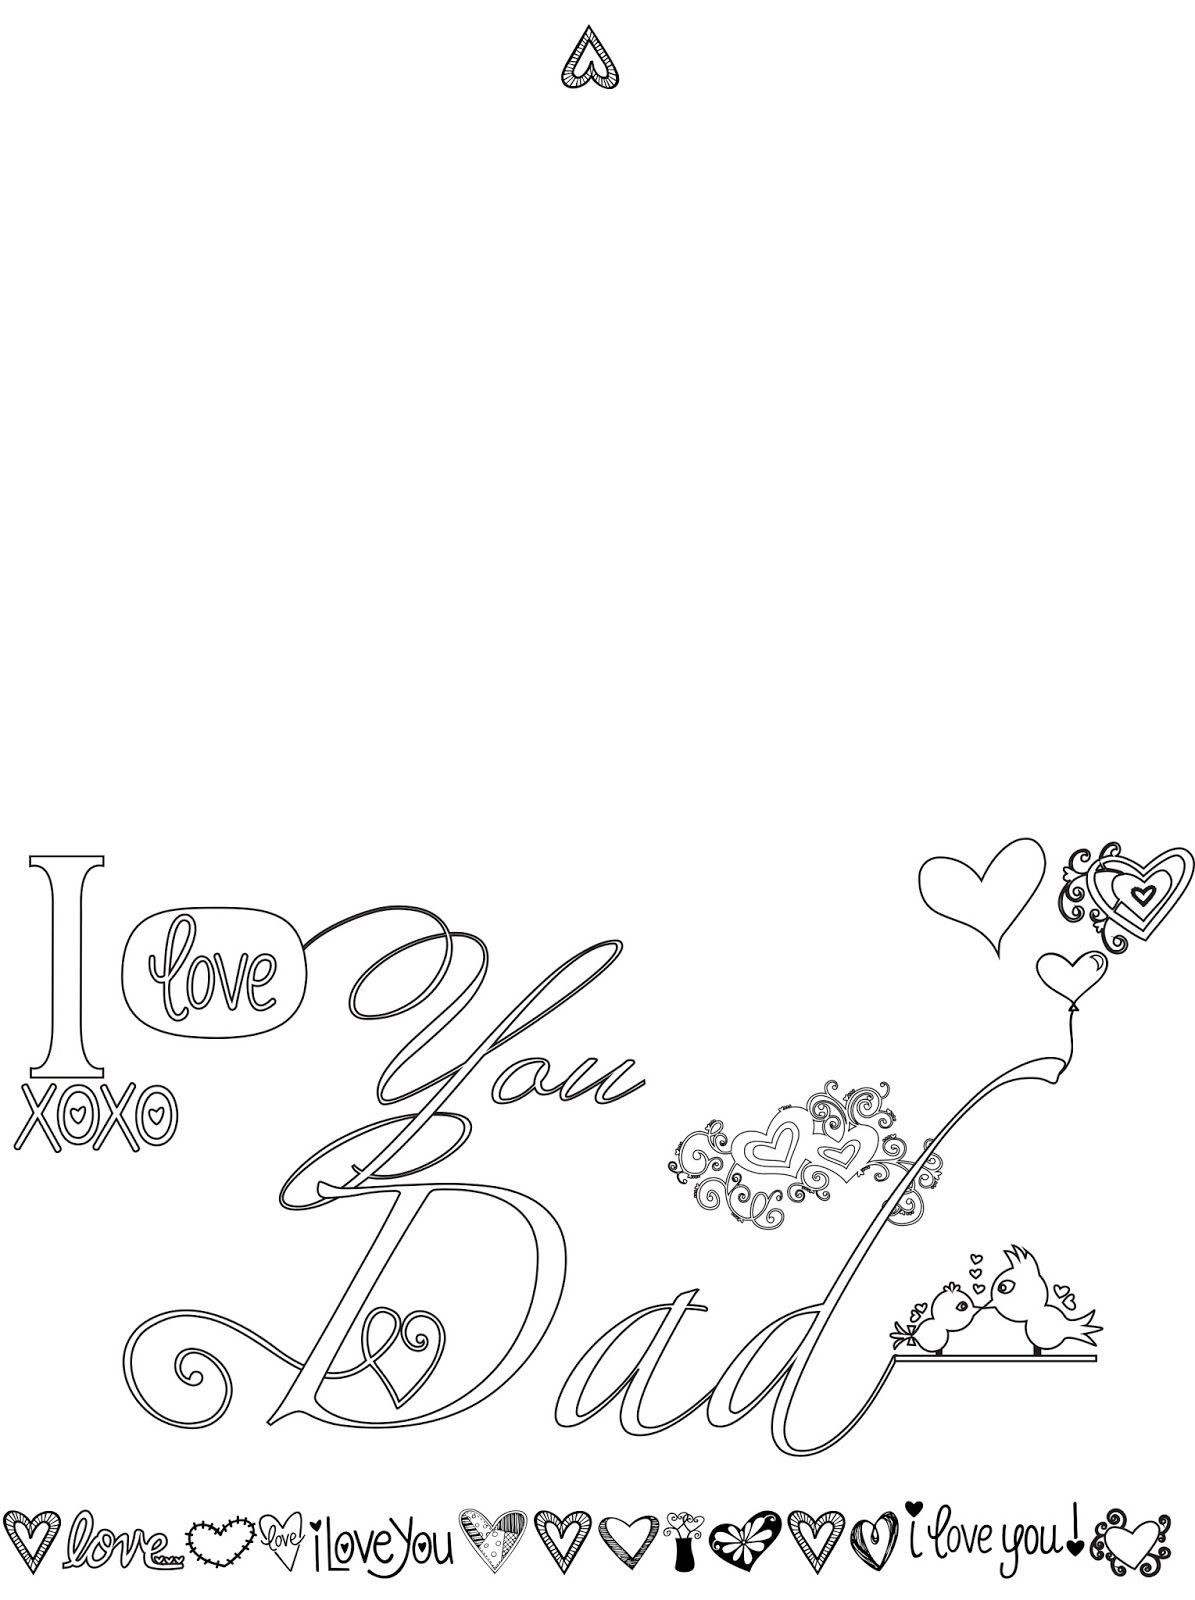 I Love You Dad Fathers Day Card Adult Coloring Page Free 02e35752ec50a24c00ad140376958d6c 787144841094925928 Parents Colouring Pages On